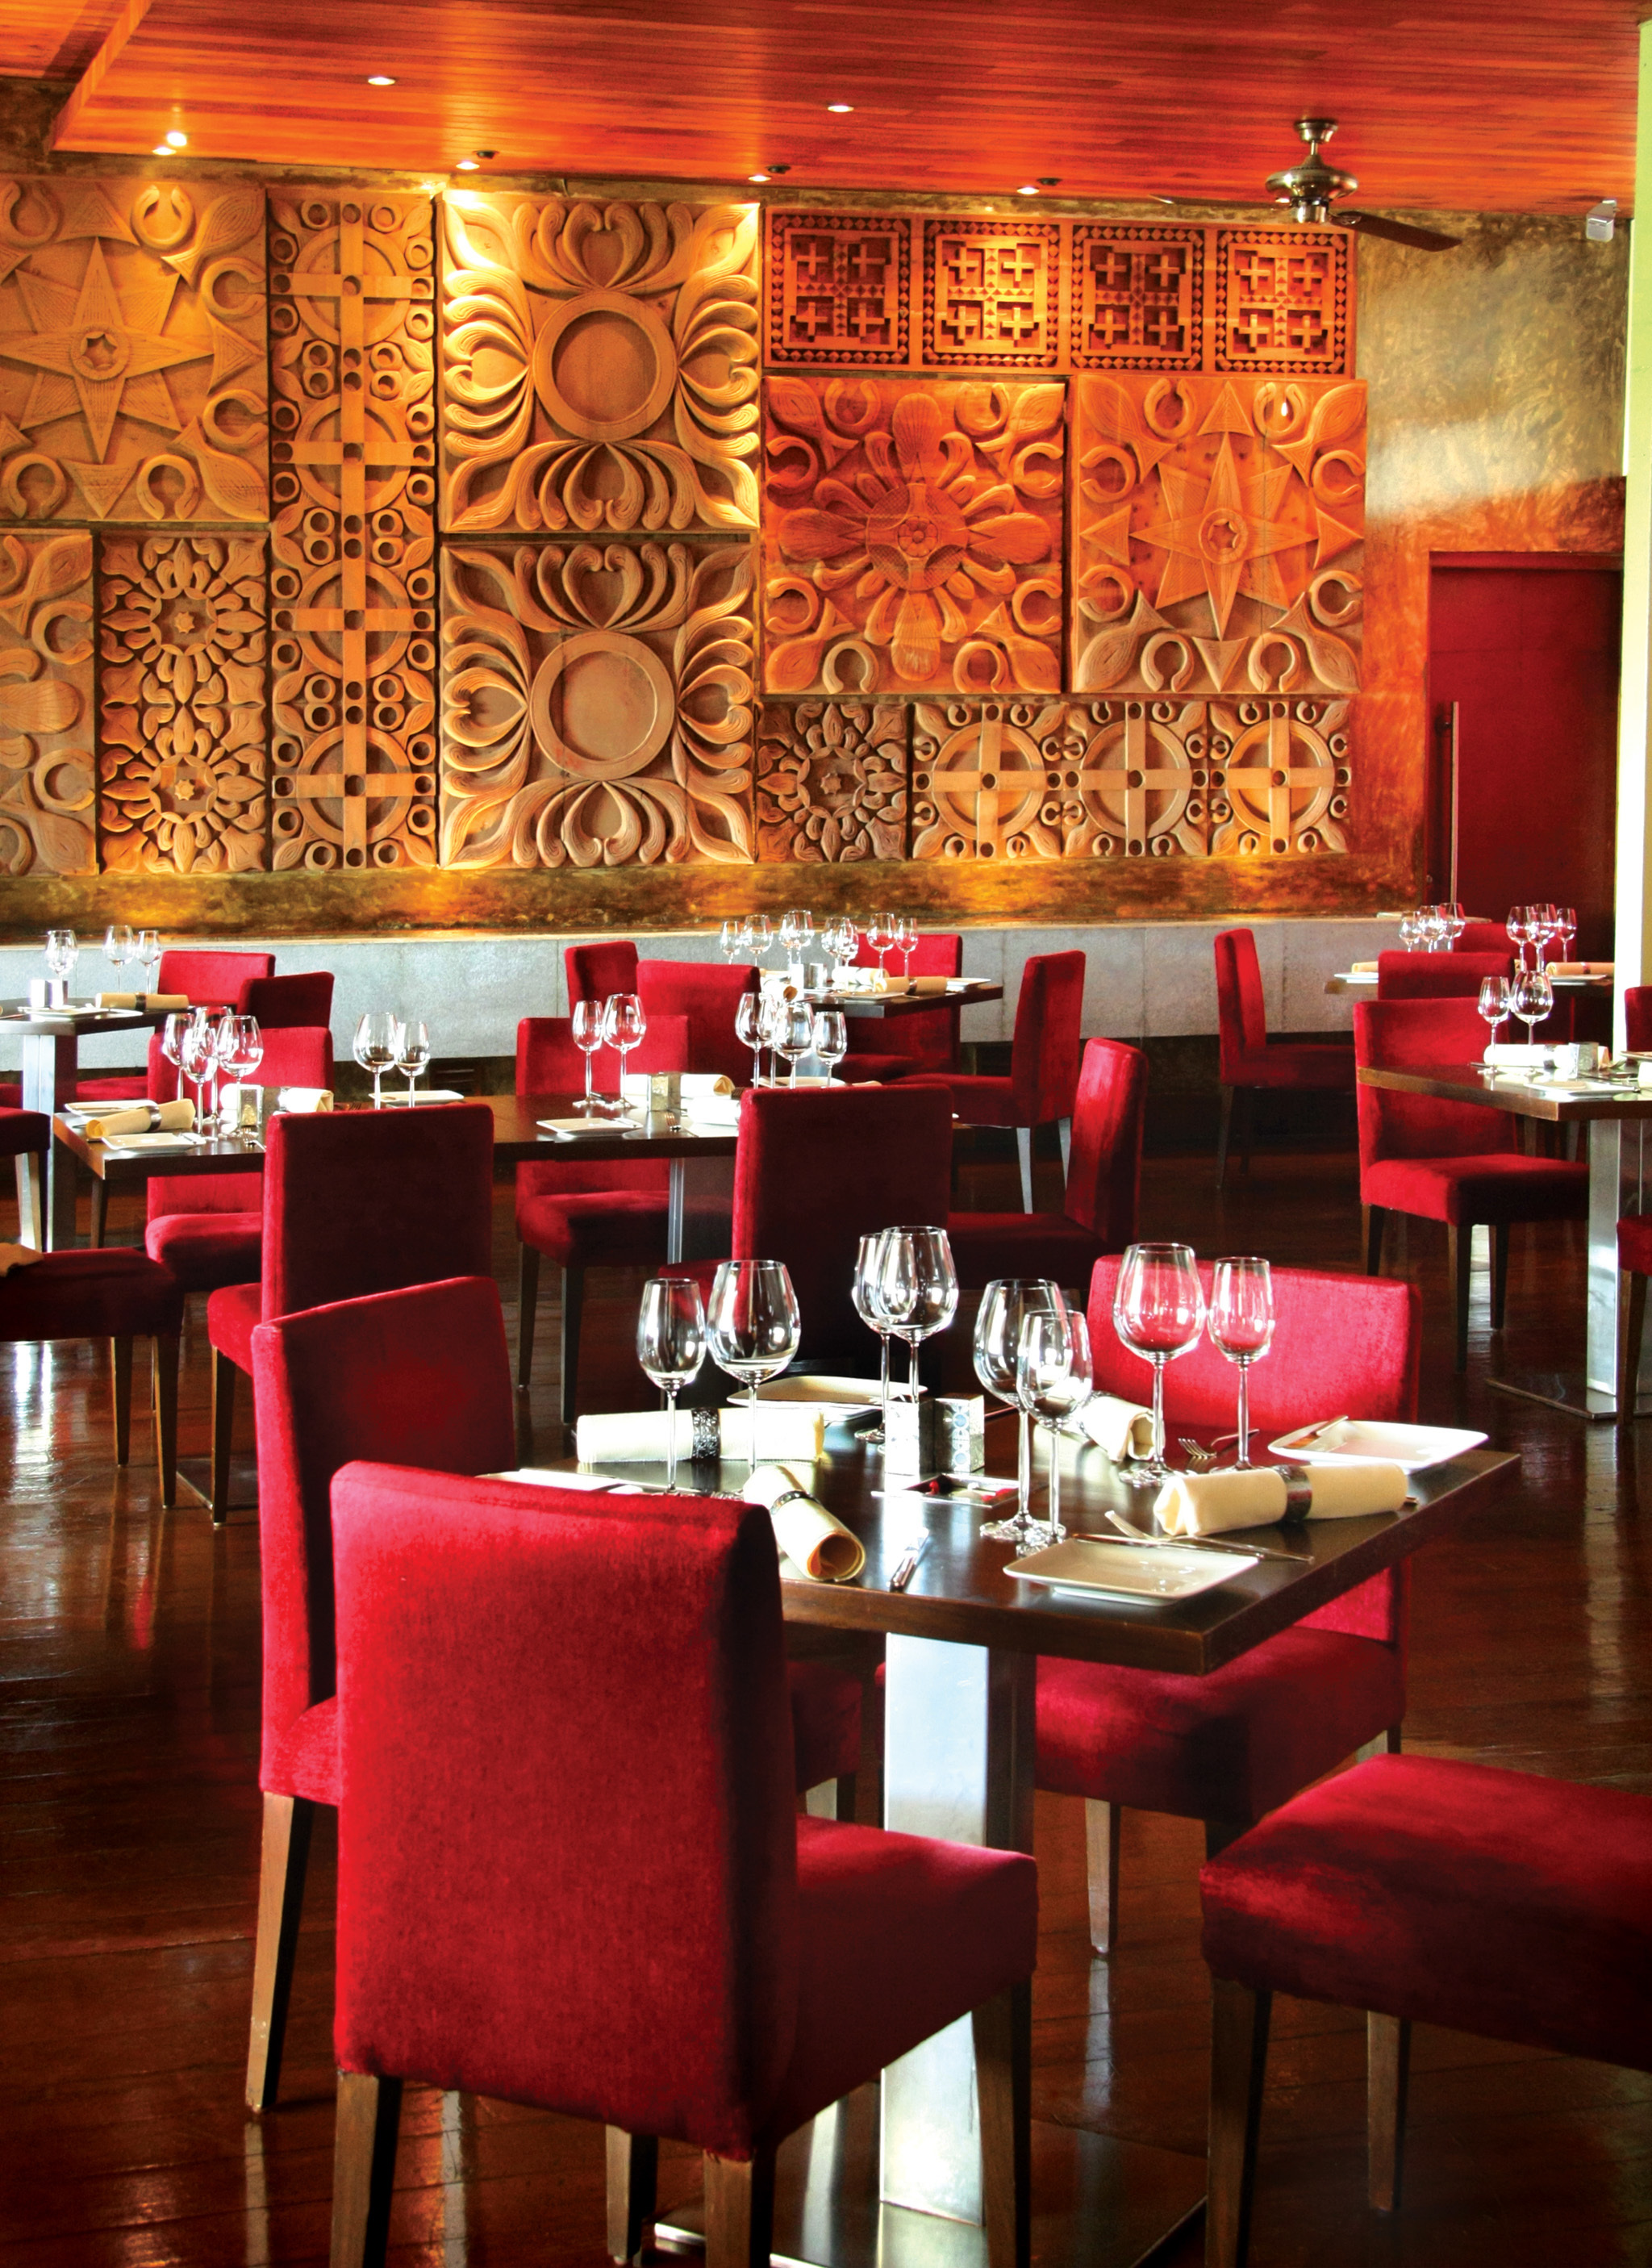 1864 Restaurant is a restaurant in Colombo